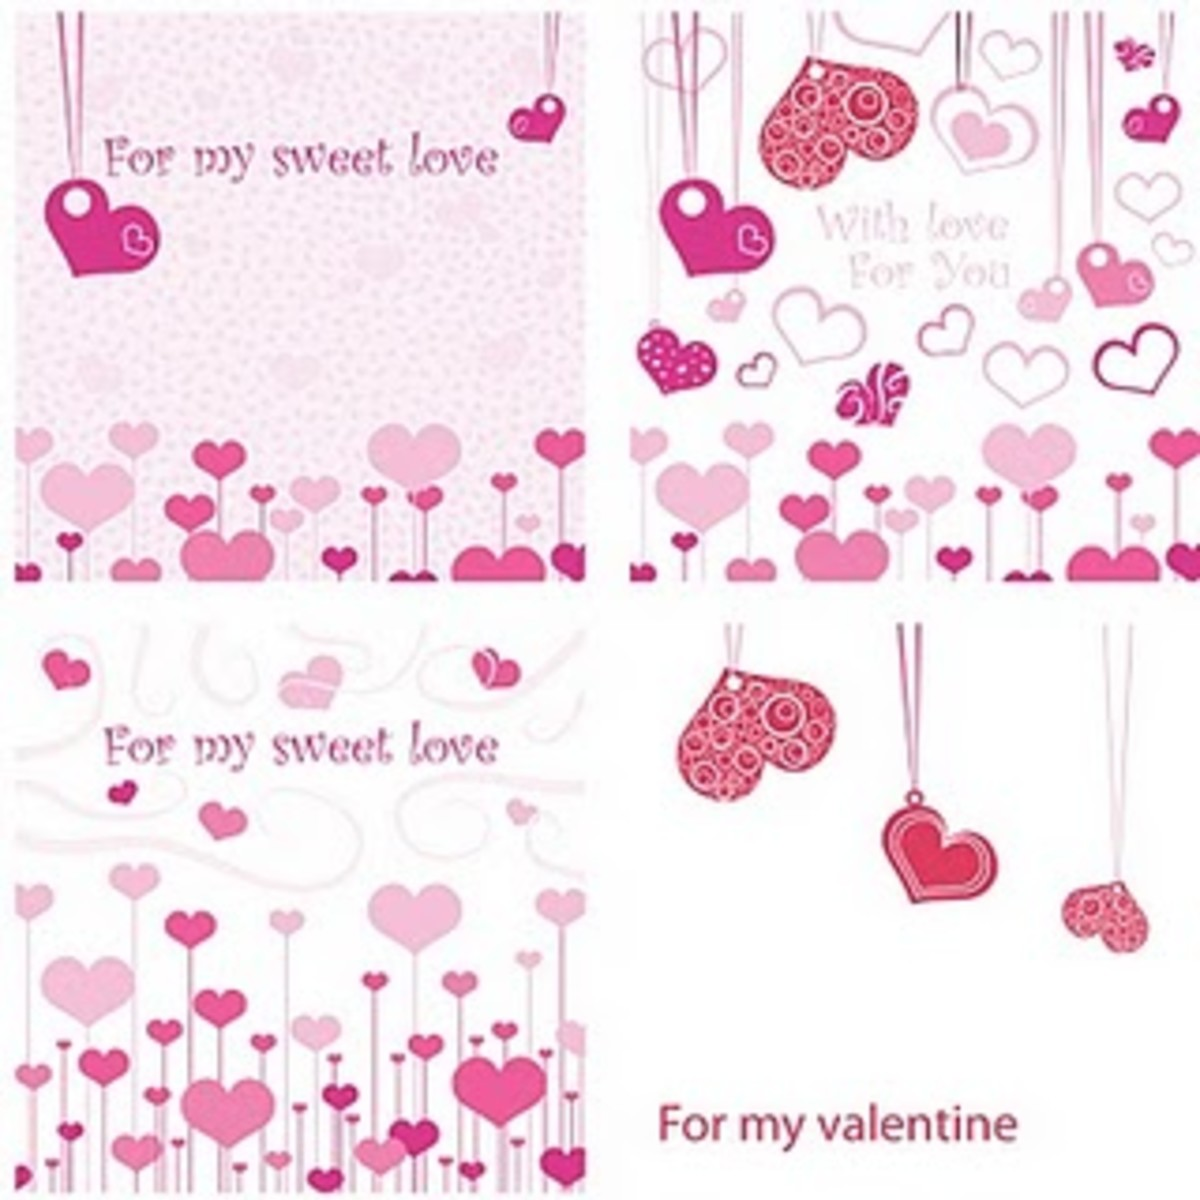 valentine's day cards at SKHedr Designs